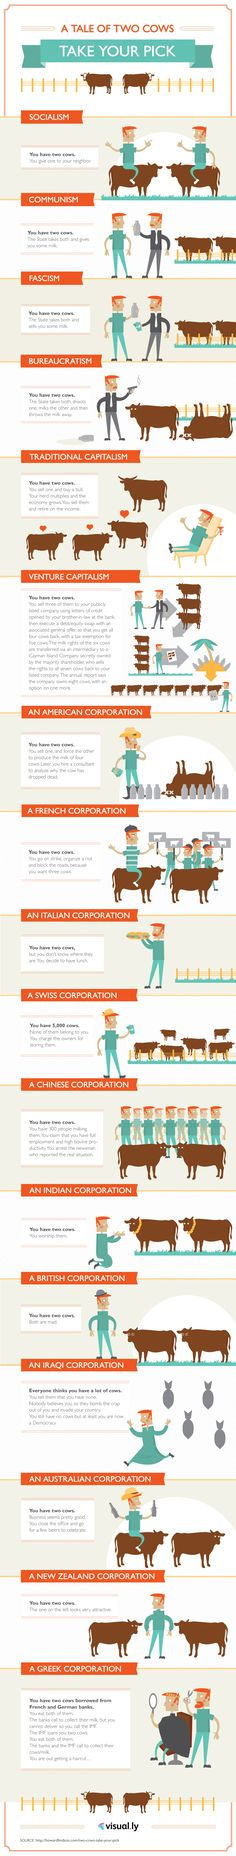 Funny and useful info at the bottom! Visual Storytelling: A Tale of Two Cows